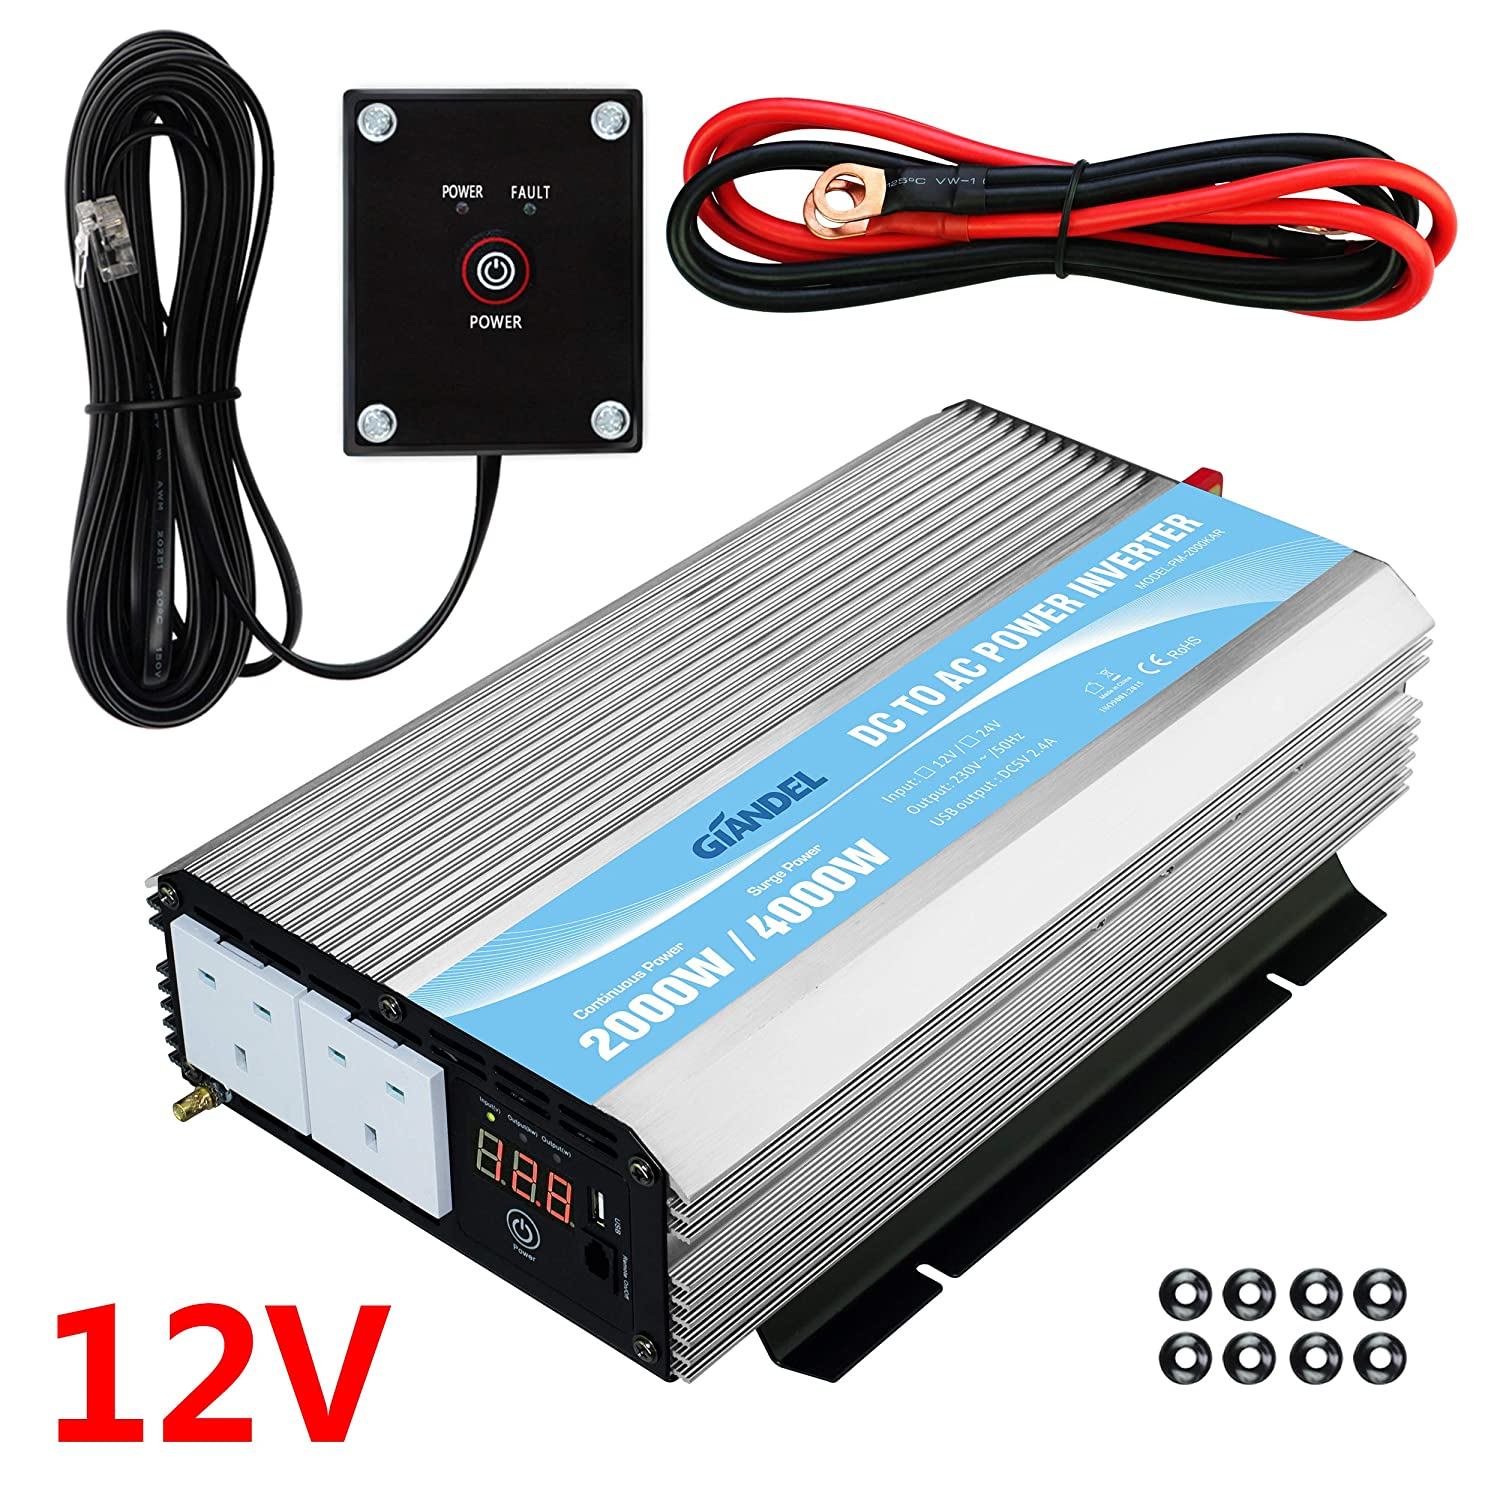 Power Inverter 2000W DC 12V to AC 230V//240V converter with remote controller /& dual AC outlets for RV Truck Car GIANDEL